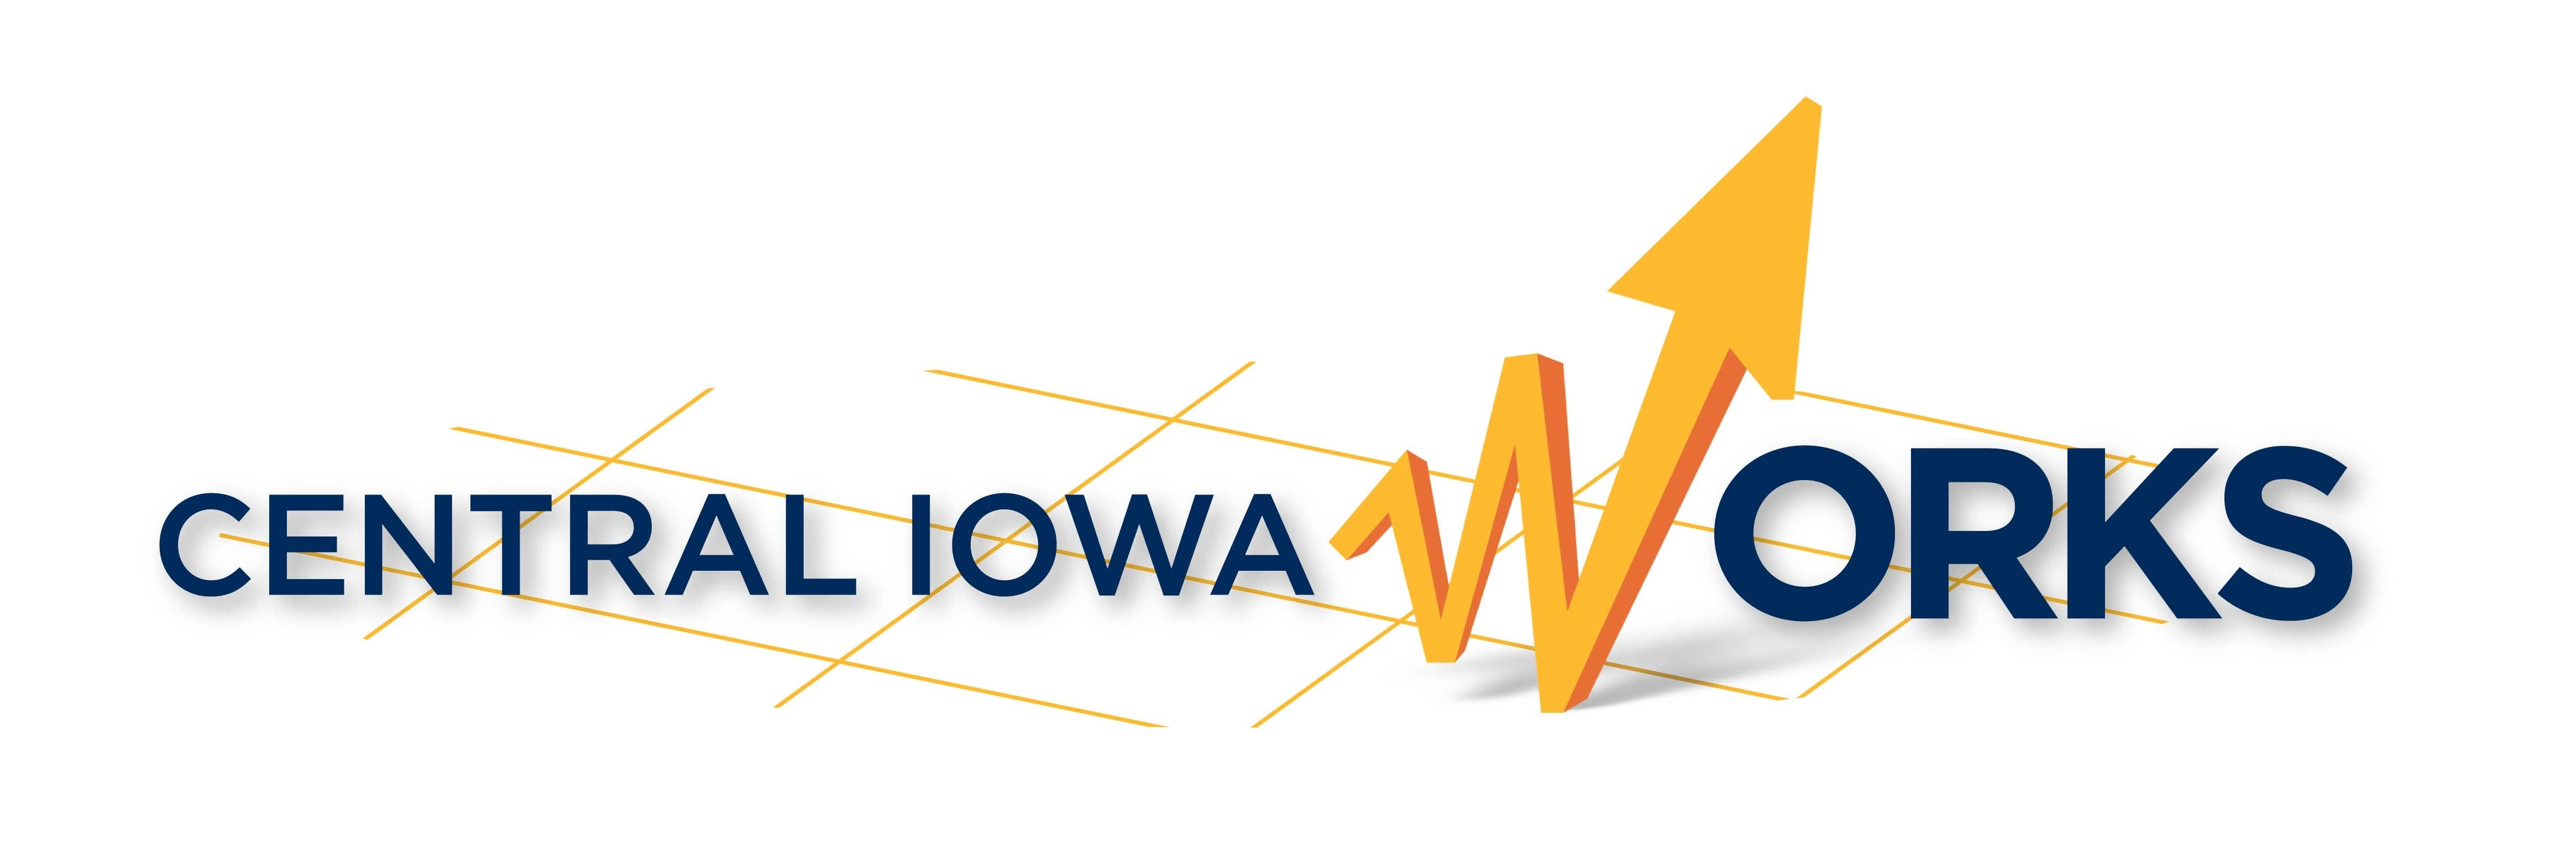 central iowa works color logo.jpg